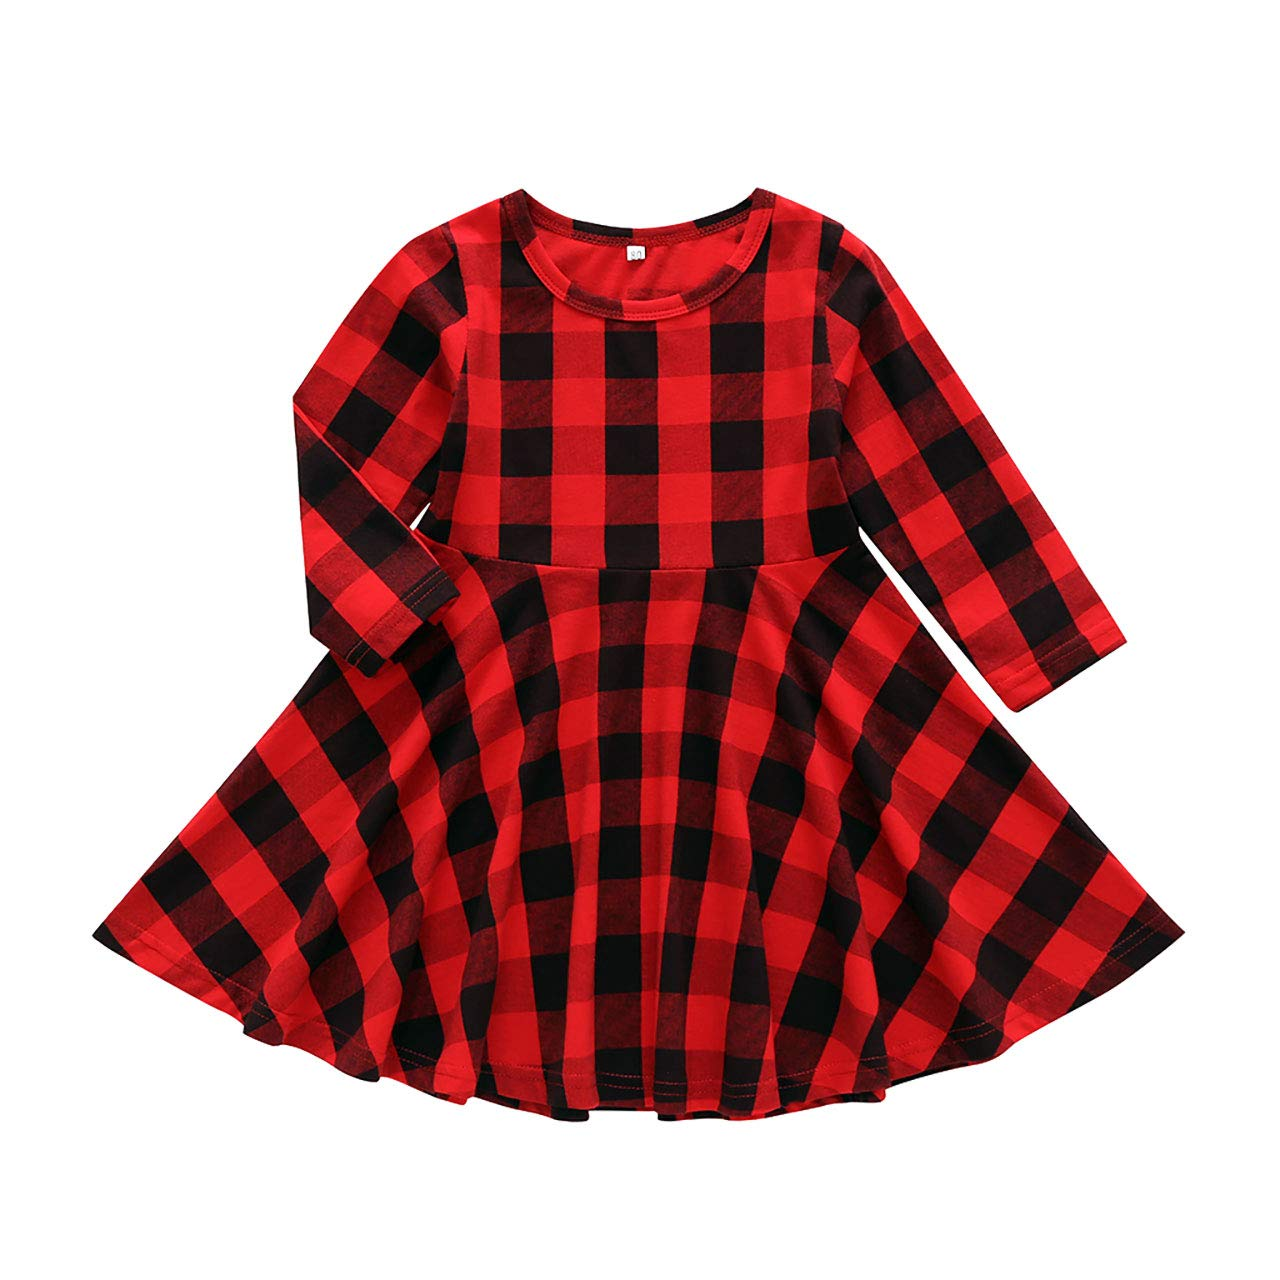 Cotton Chuya Classic Tartan Full Body Dress for Baby Girls